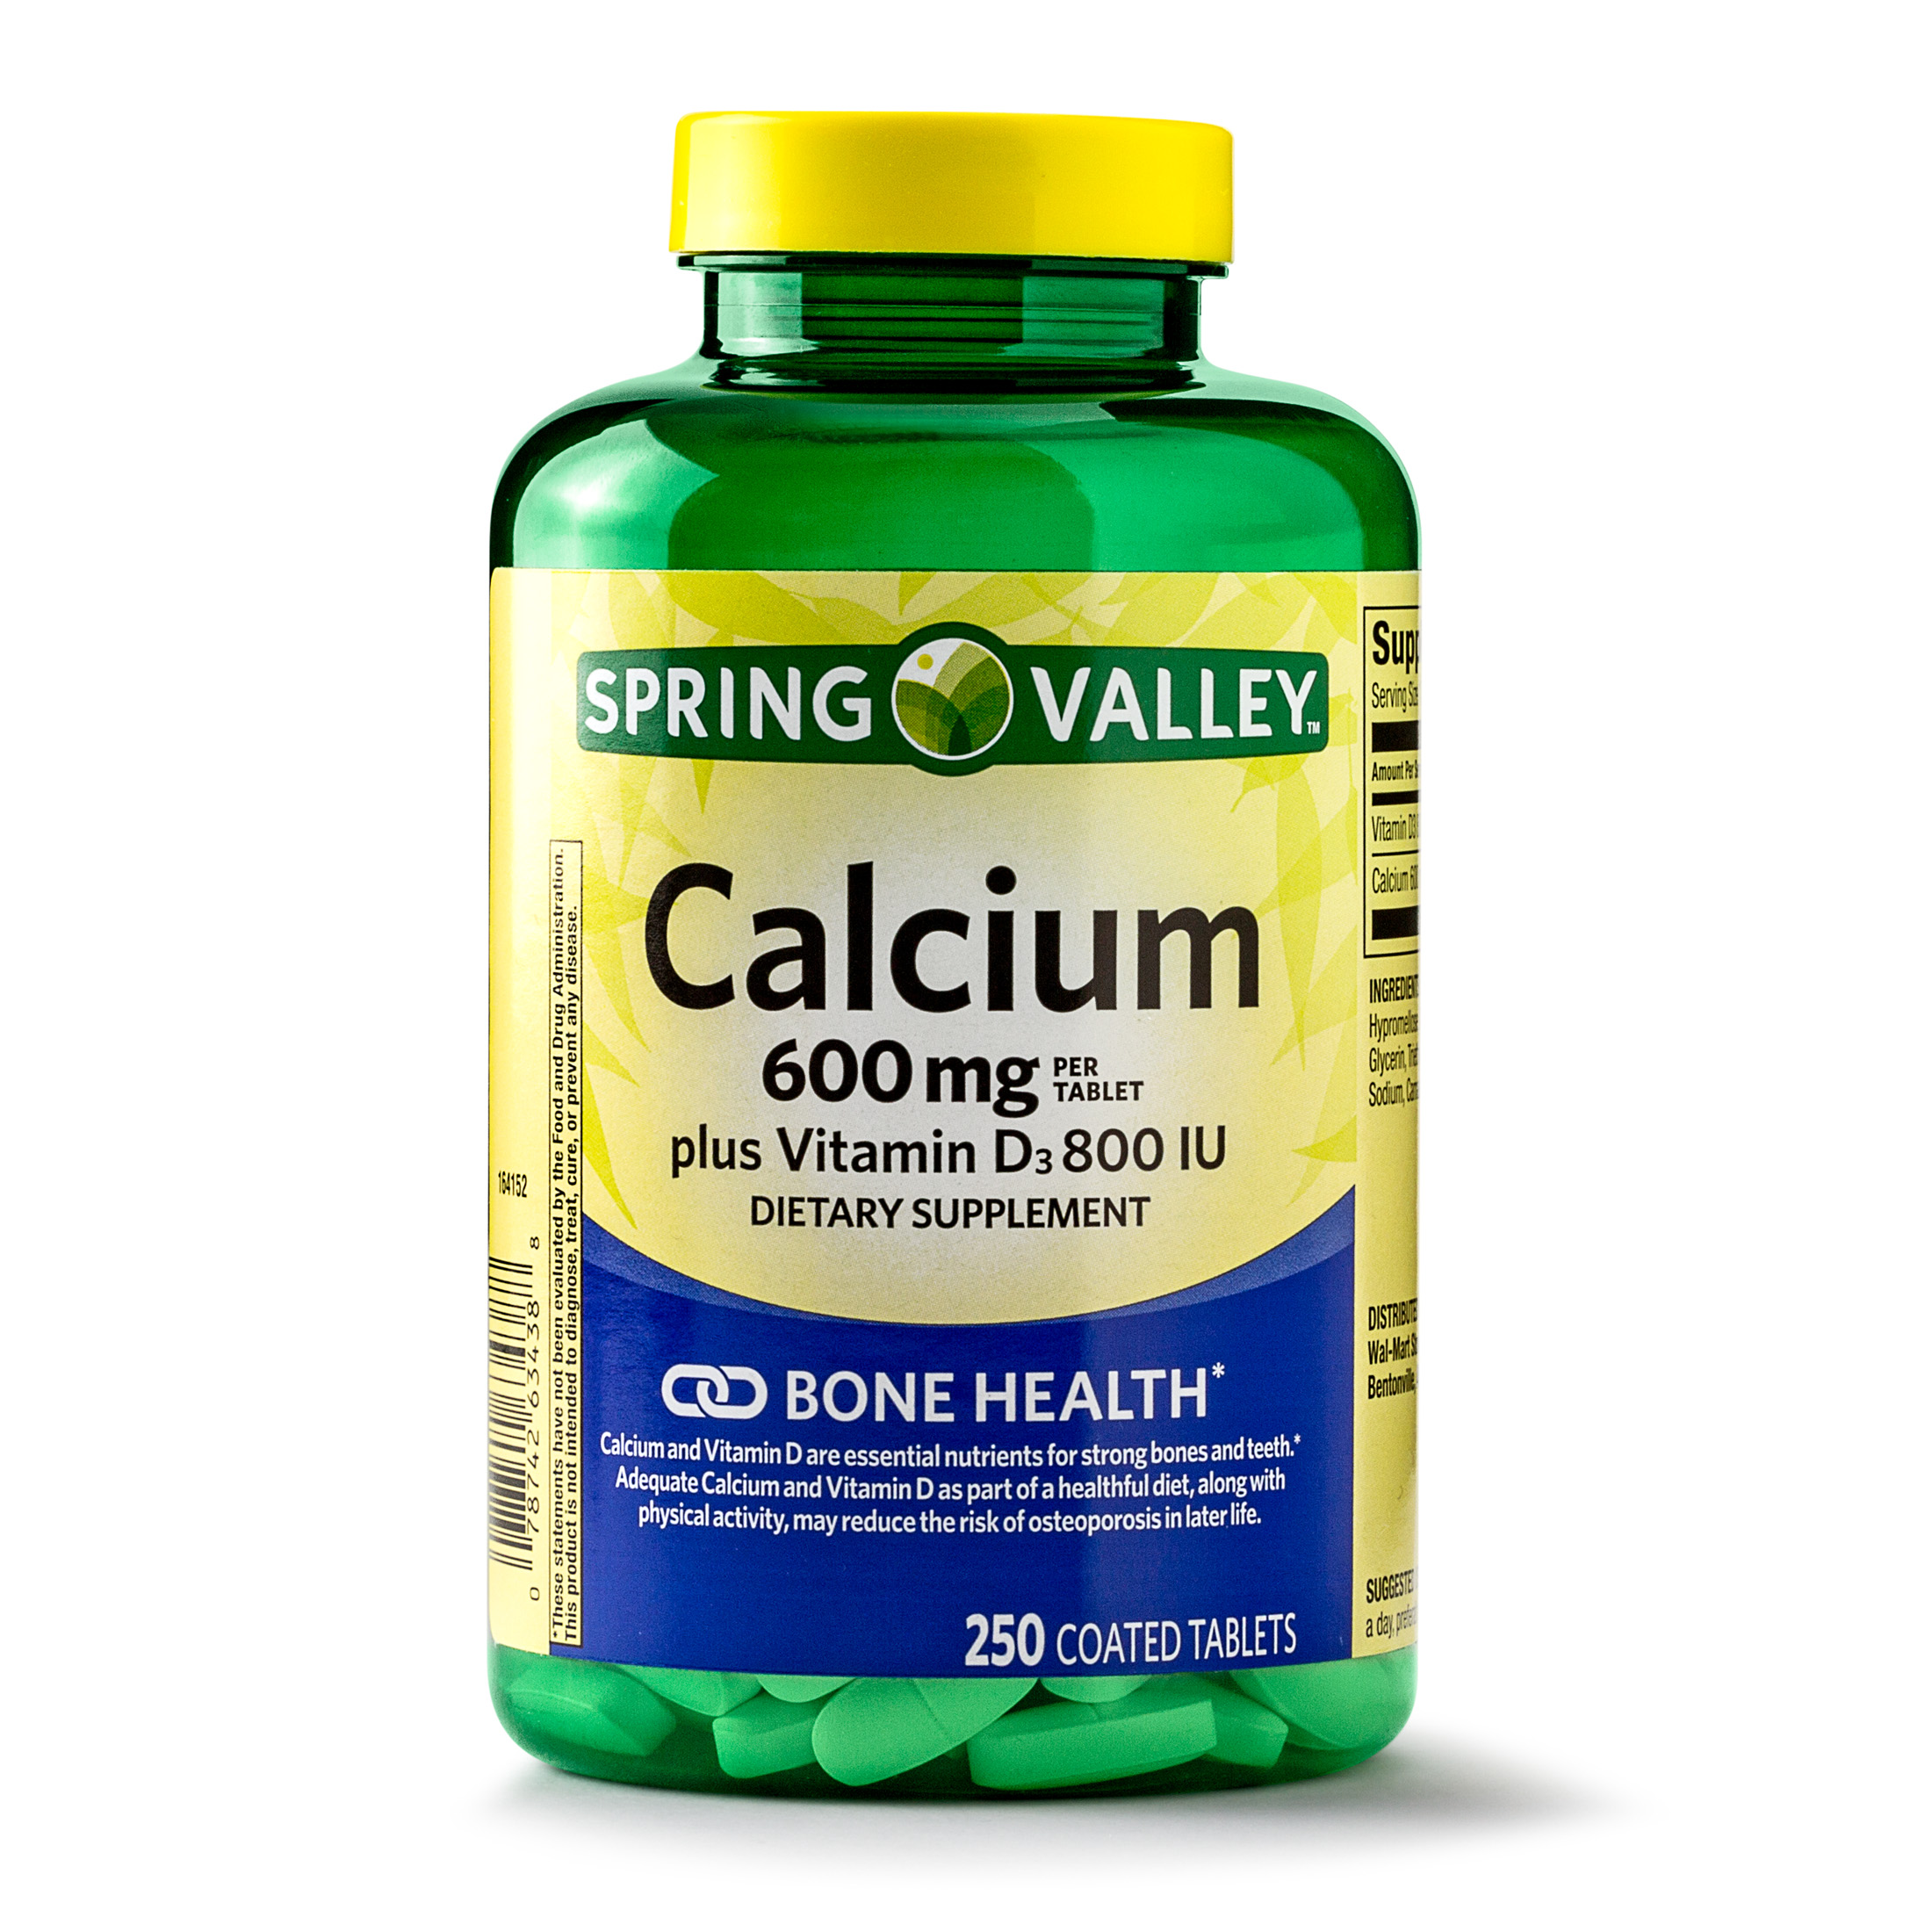 Spring Valley Calcium plus Vitamin D Coated Tablets, 600 mg, 250 Ct